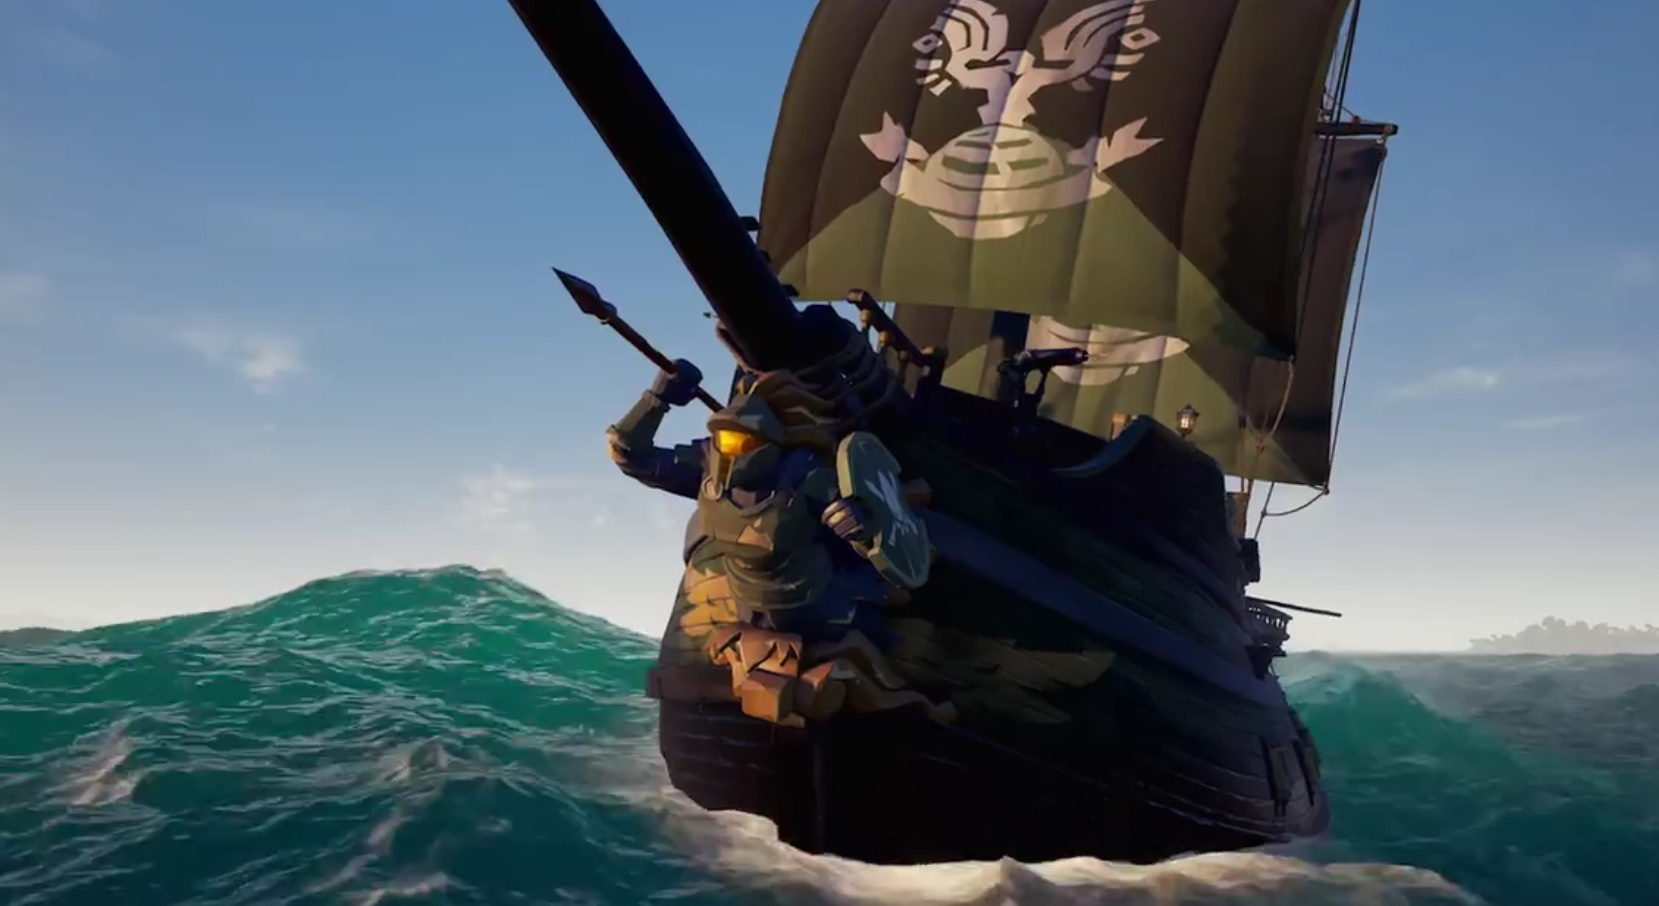 Get a Halo-inspired Spartan Ship Set for Sea of Thieves for